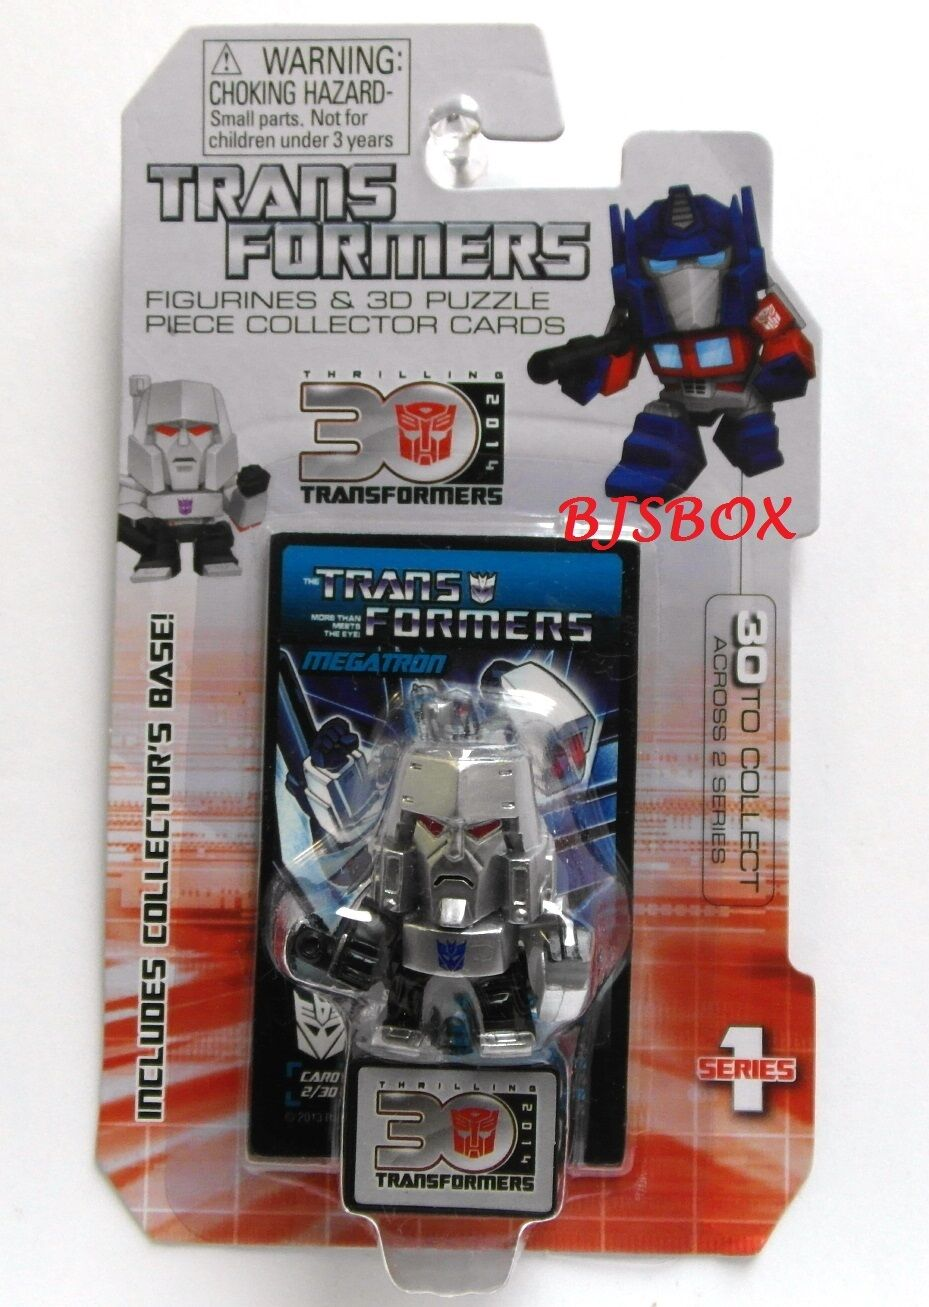 Transformers 15 15 15 Figure Set Series Figurines & 3D Puzzle Collector Cards New b6c4ea